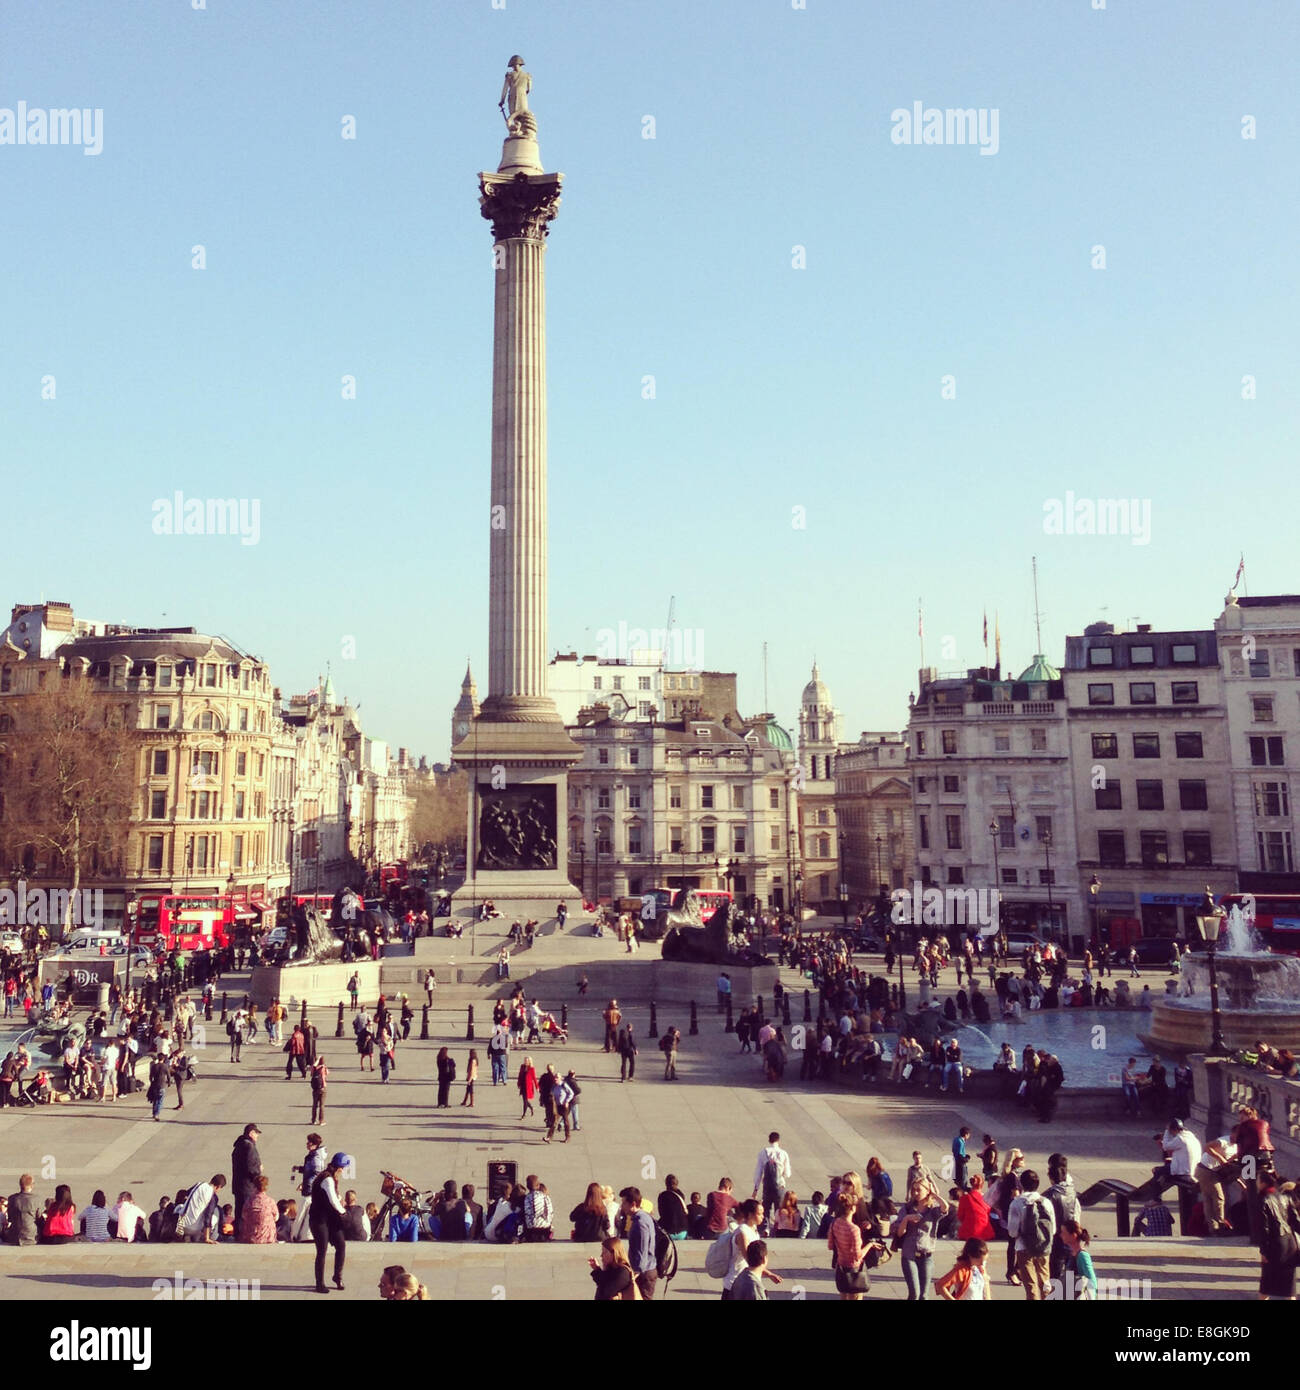 United Kingdom, London, Column on Trafalgar Square - Stock Image